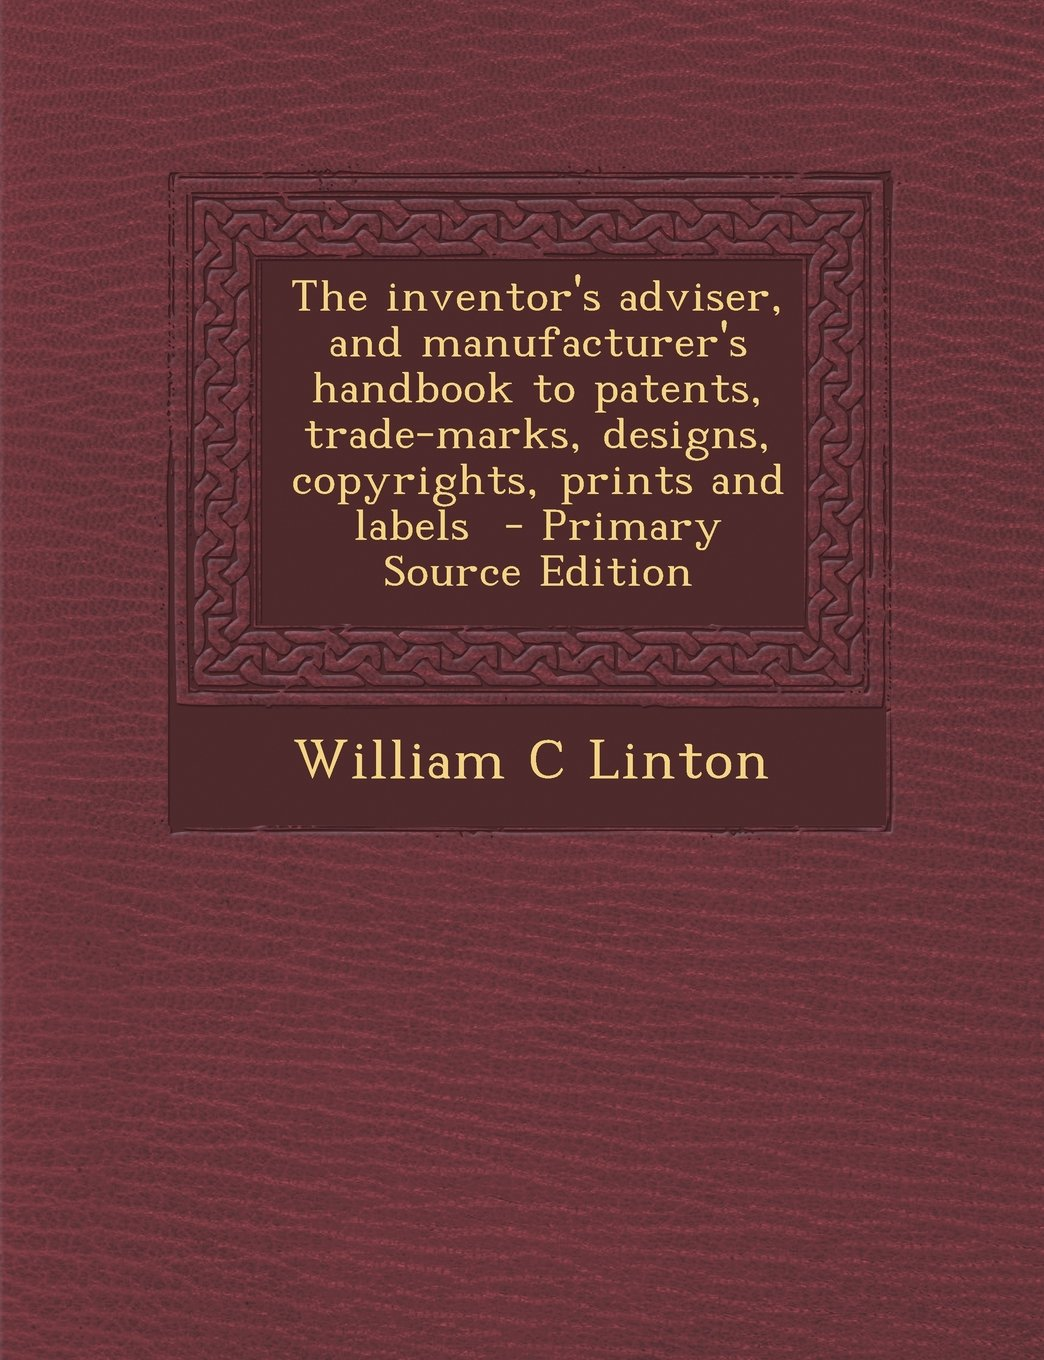 Read Online The Inventor's Adviser, and Manufacturer's Handbook to Patents, Trade-Marks, Designs, Copyrights, Prints and Labels - Primary Source Edition ebook